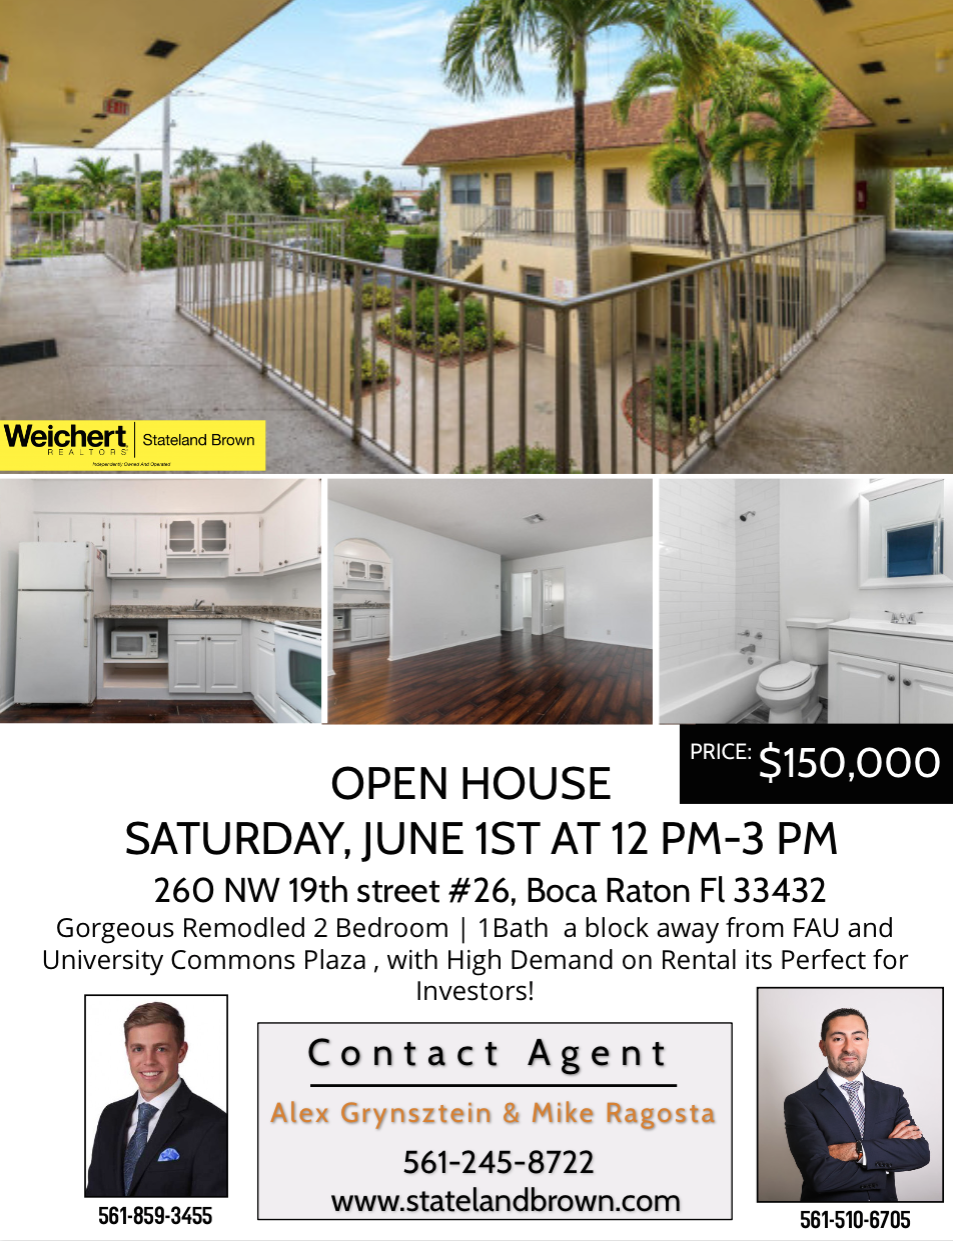 Open House in Boca Raton on Saturday, June 1st